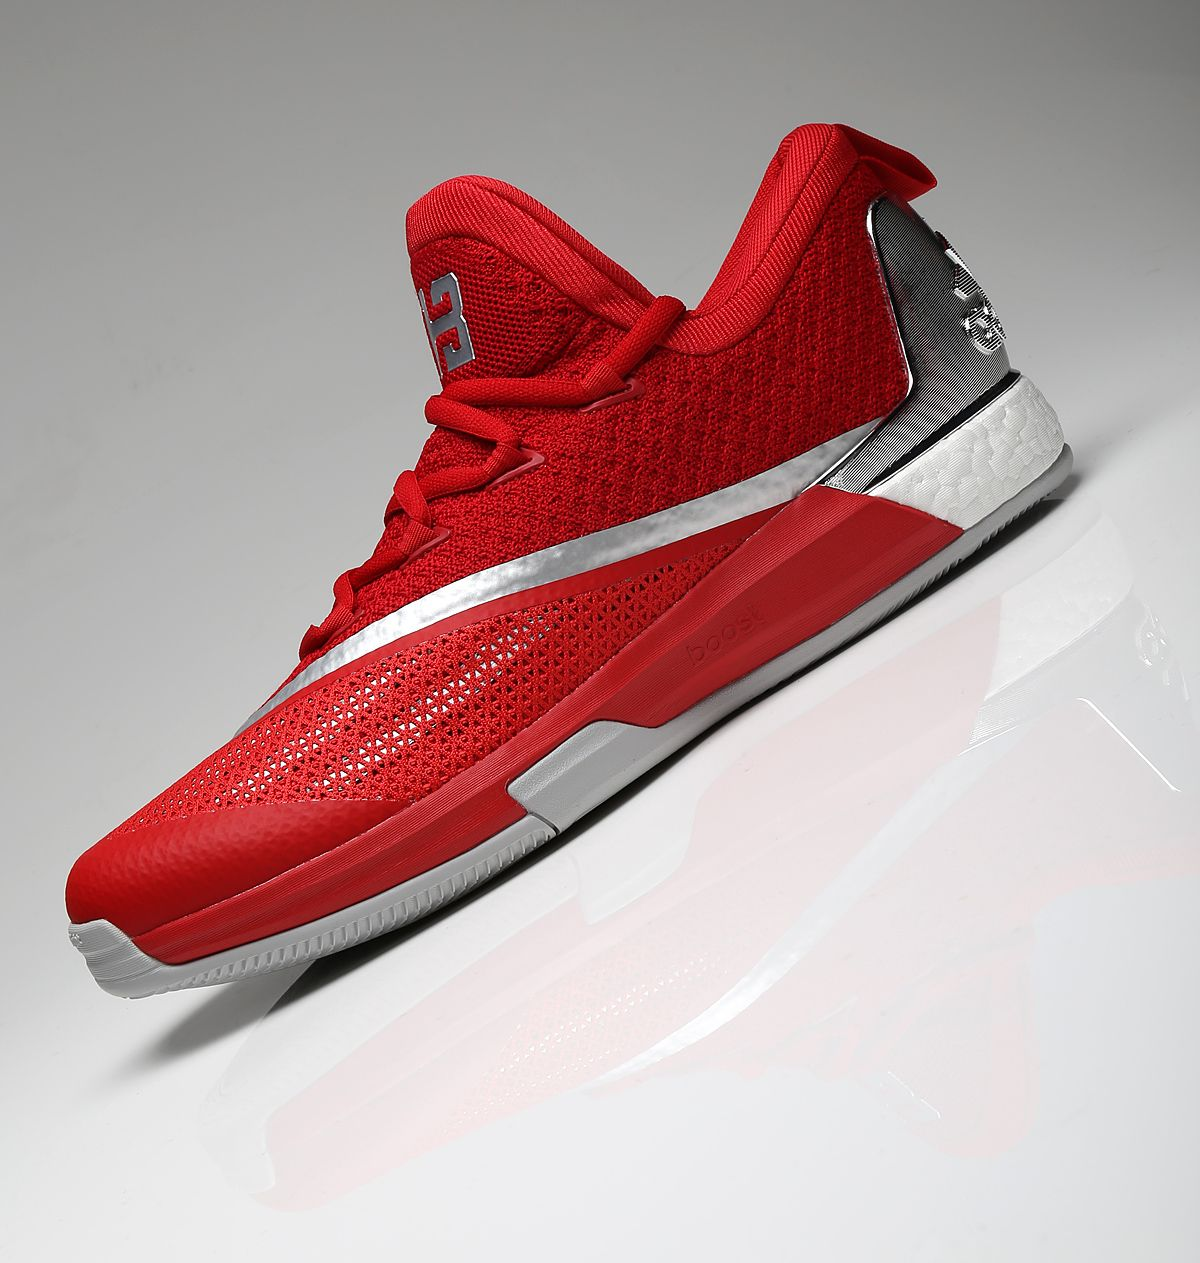 b187982c0b6 James Harden adidas Crazylight Boost 2 5 10